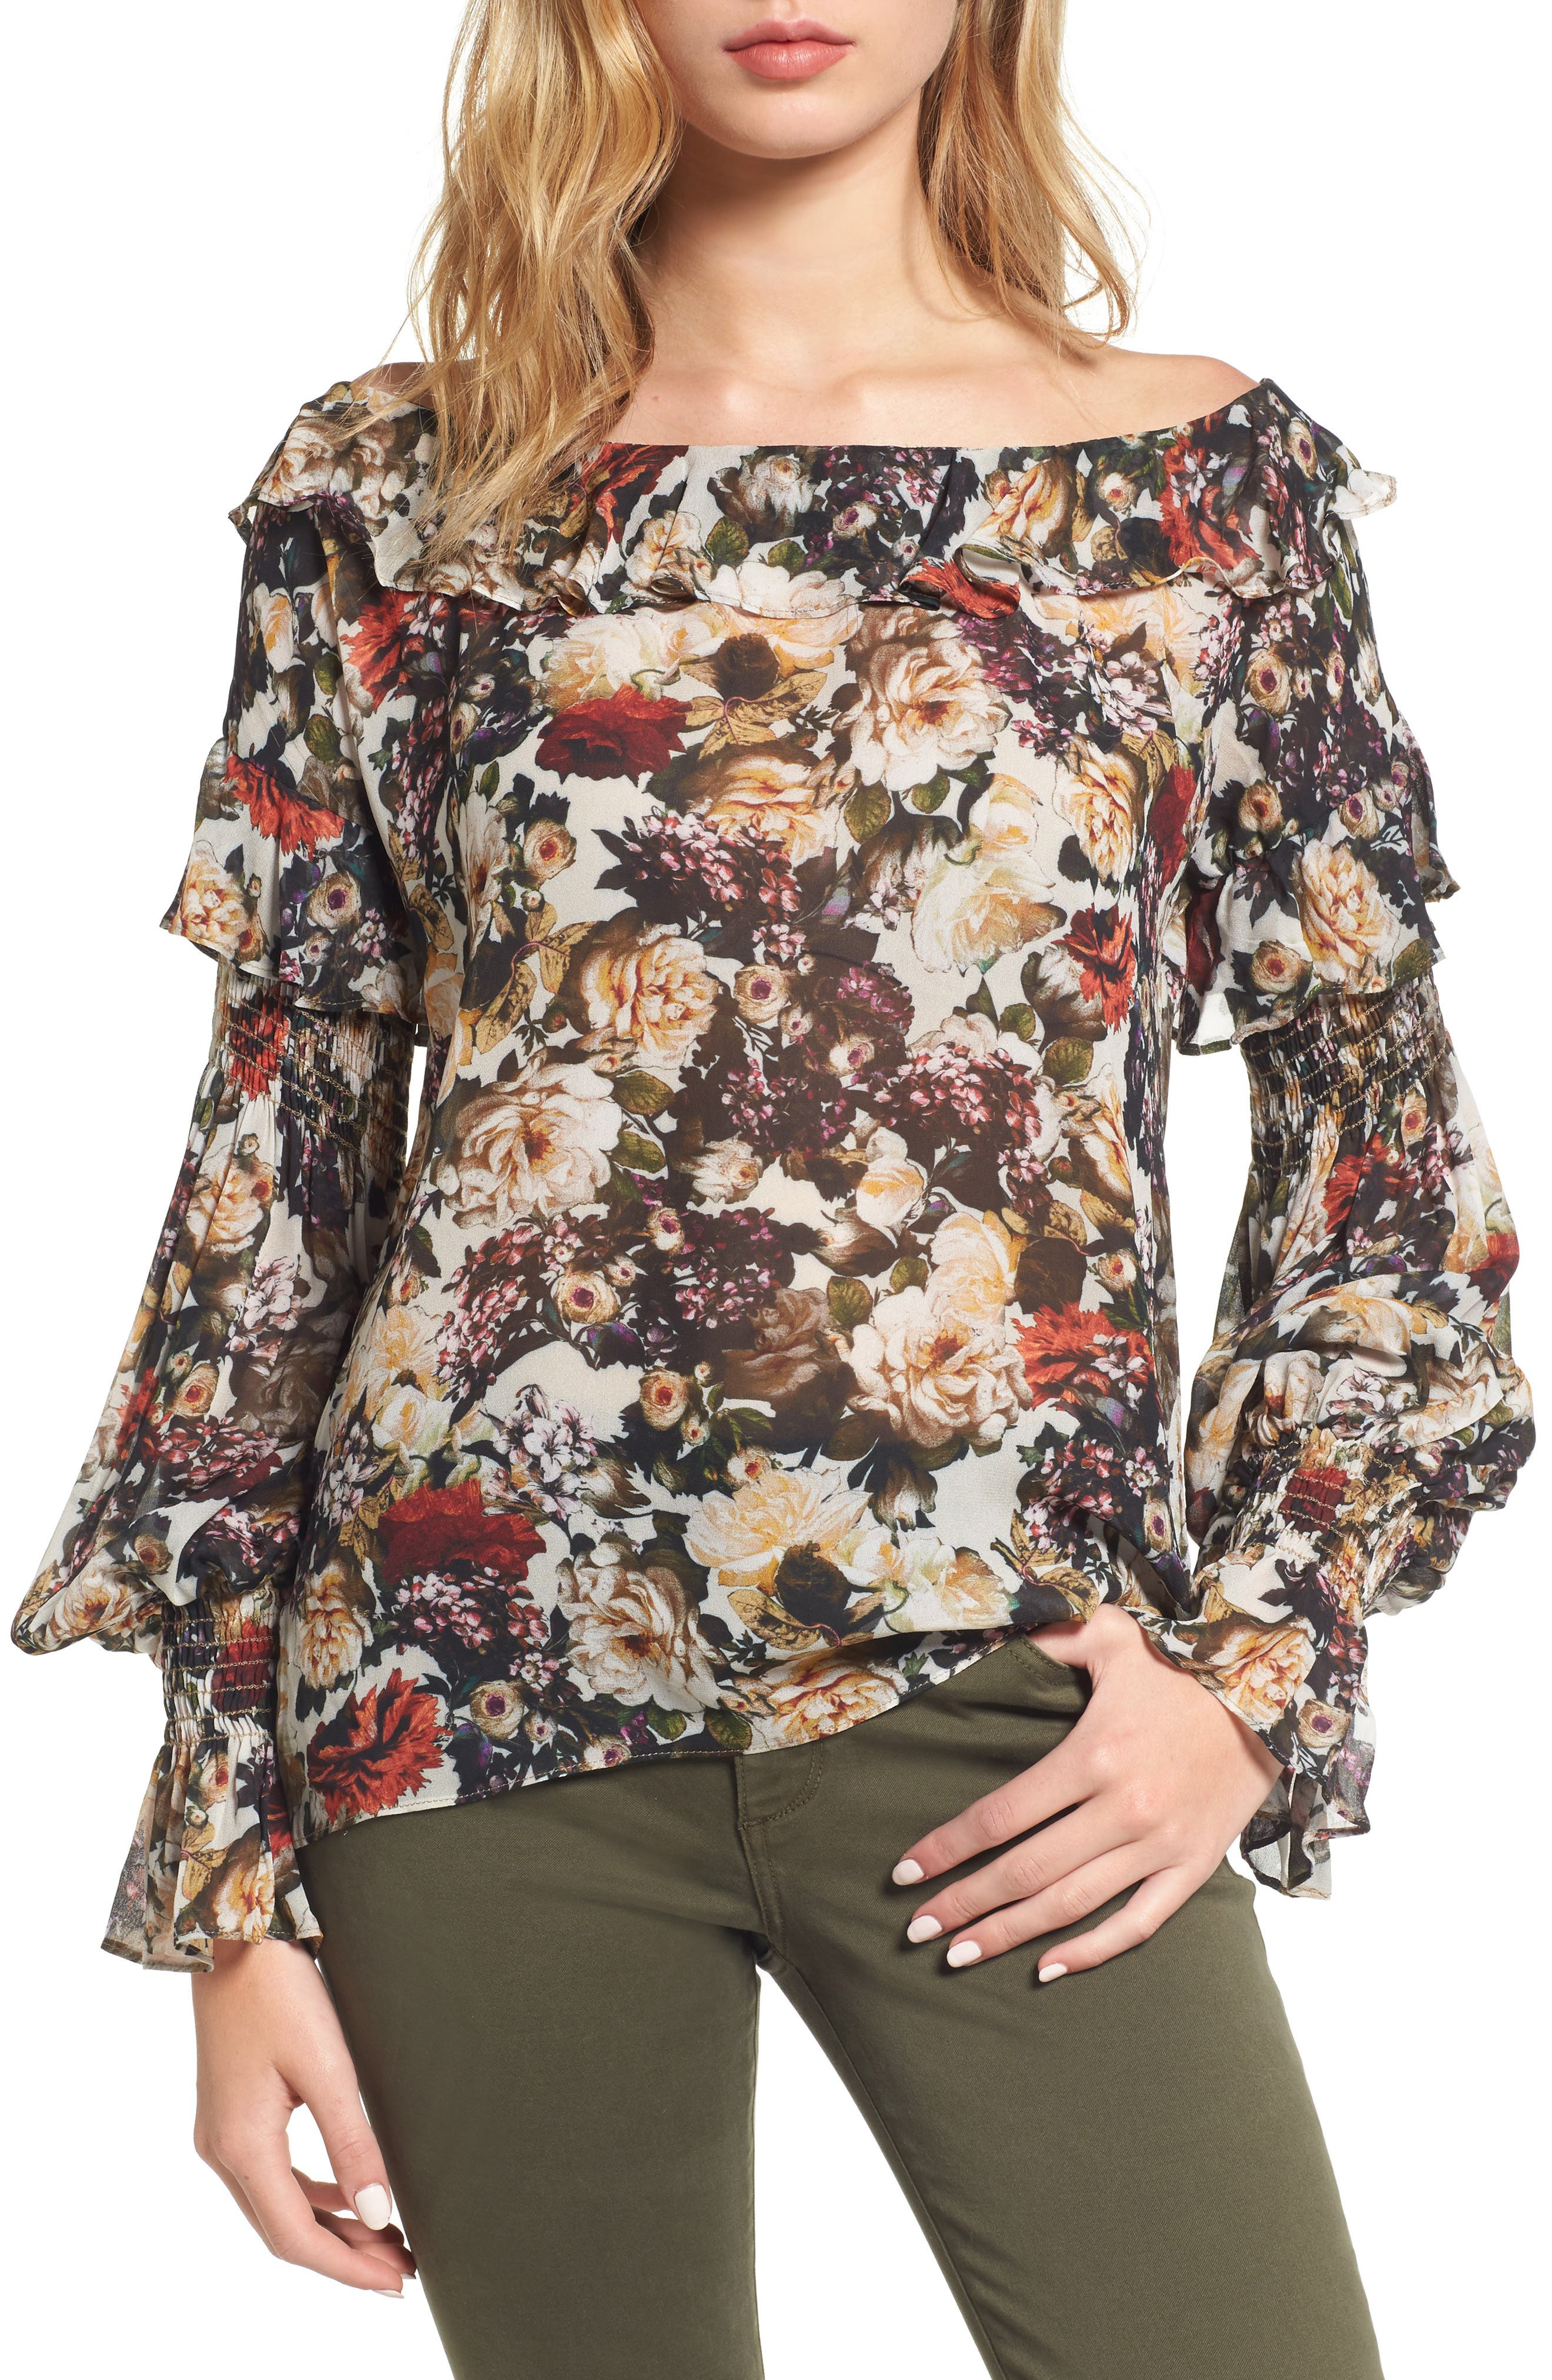 Once Upon a Time Blouse,                         Main,                         color, Floral